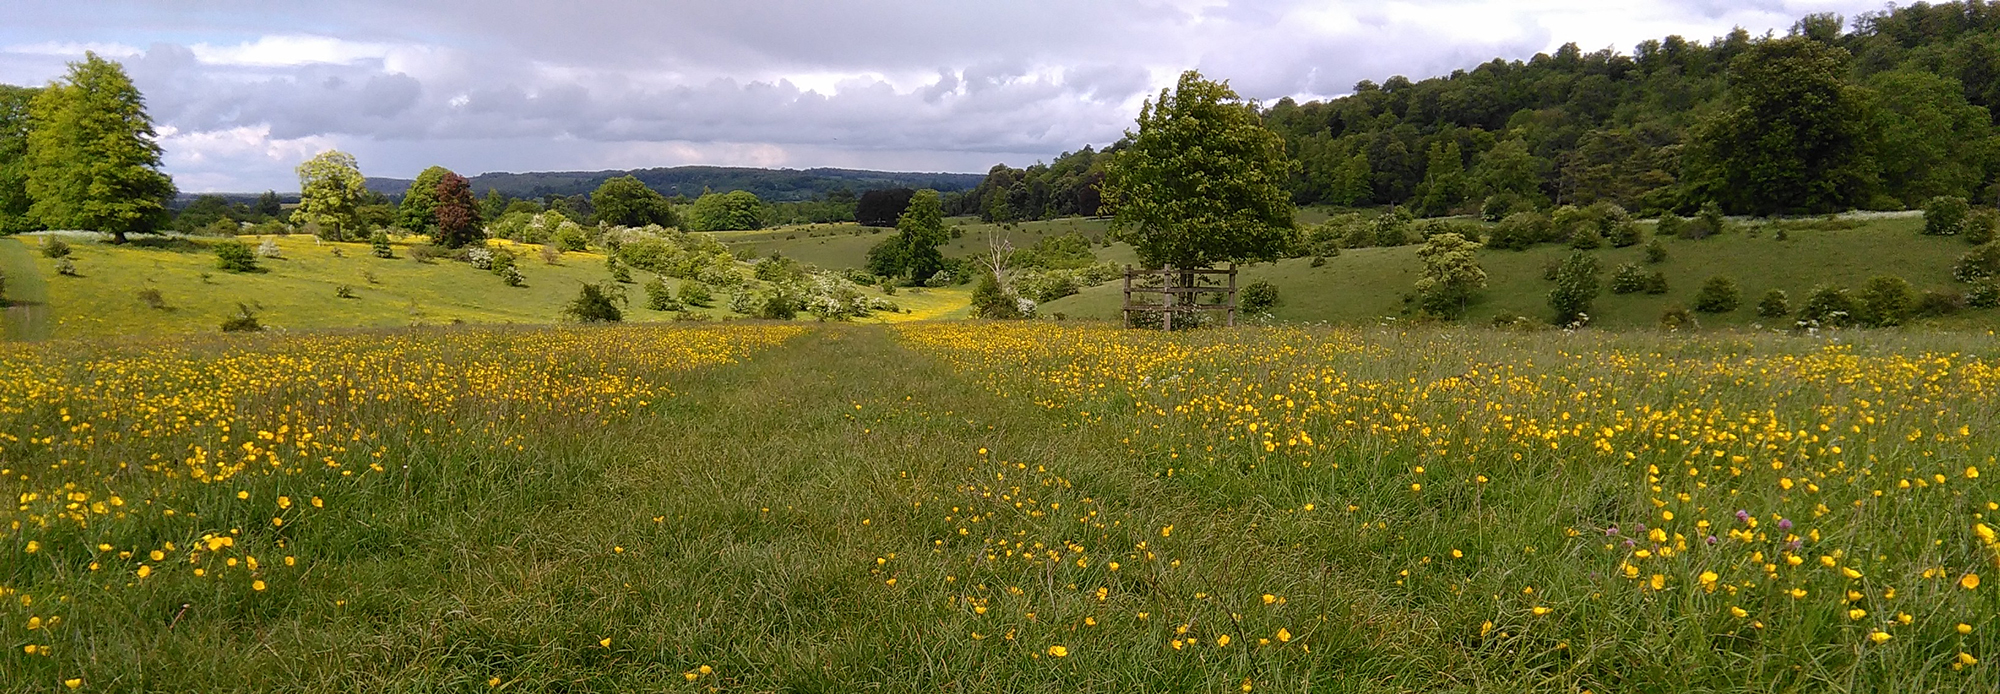 5 MINUTES WALK from the studio is the beautiful  Tring Park  - 264 acres of chalk grassland, scrub, mixed woodland and parkland landscaped by Charles Bridgeman in the late 17th and early 18th centuries - worth a visit if you have time!